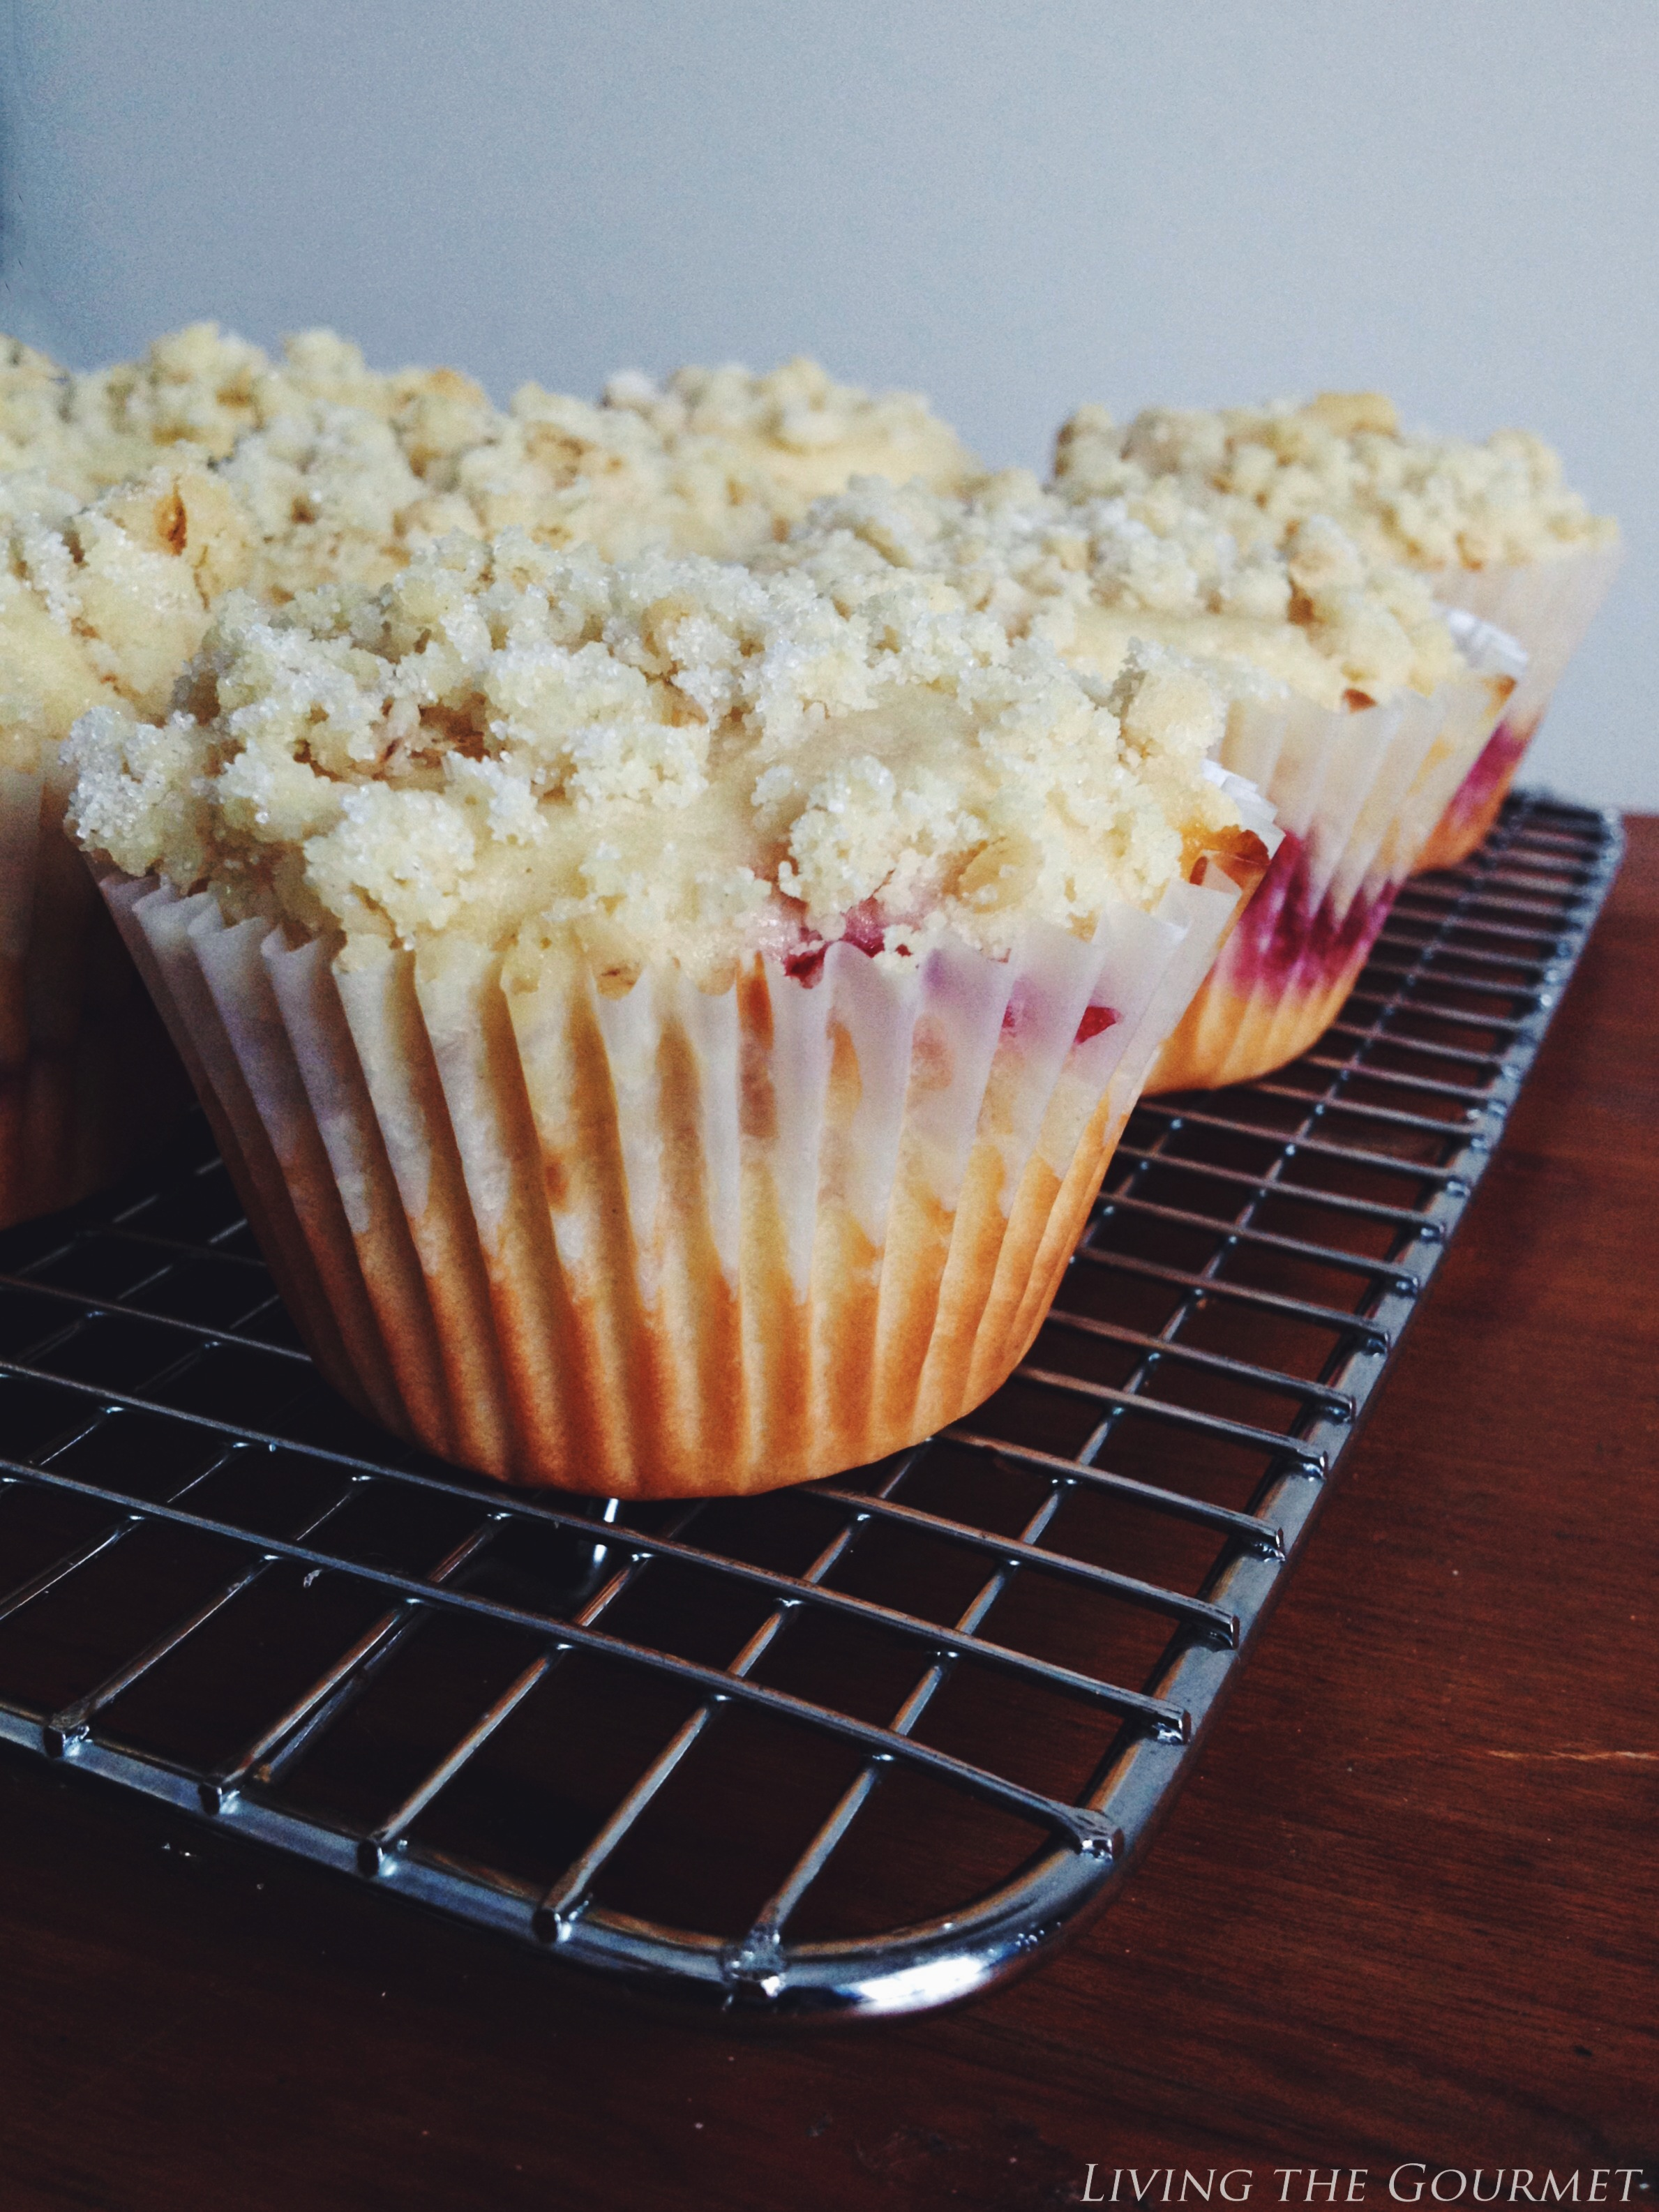 Living the Gourmet: White Chocolate & Strawberry Muffins